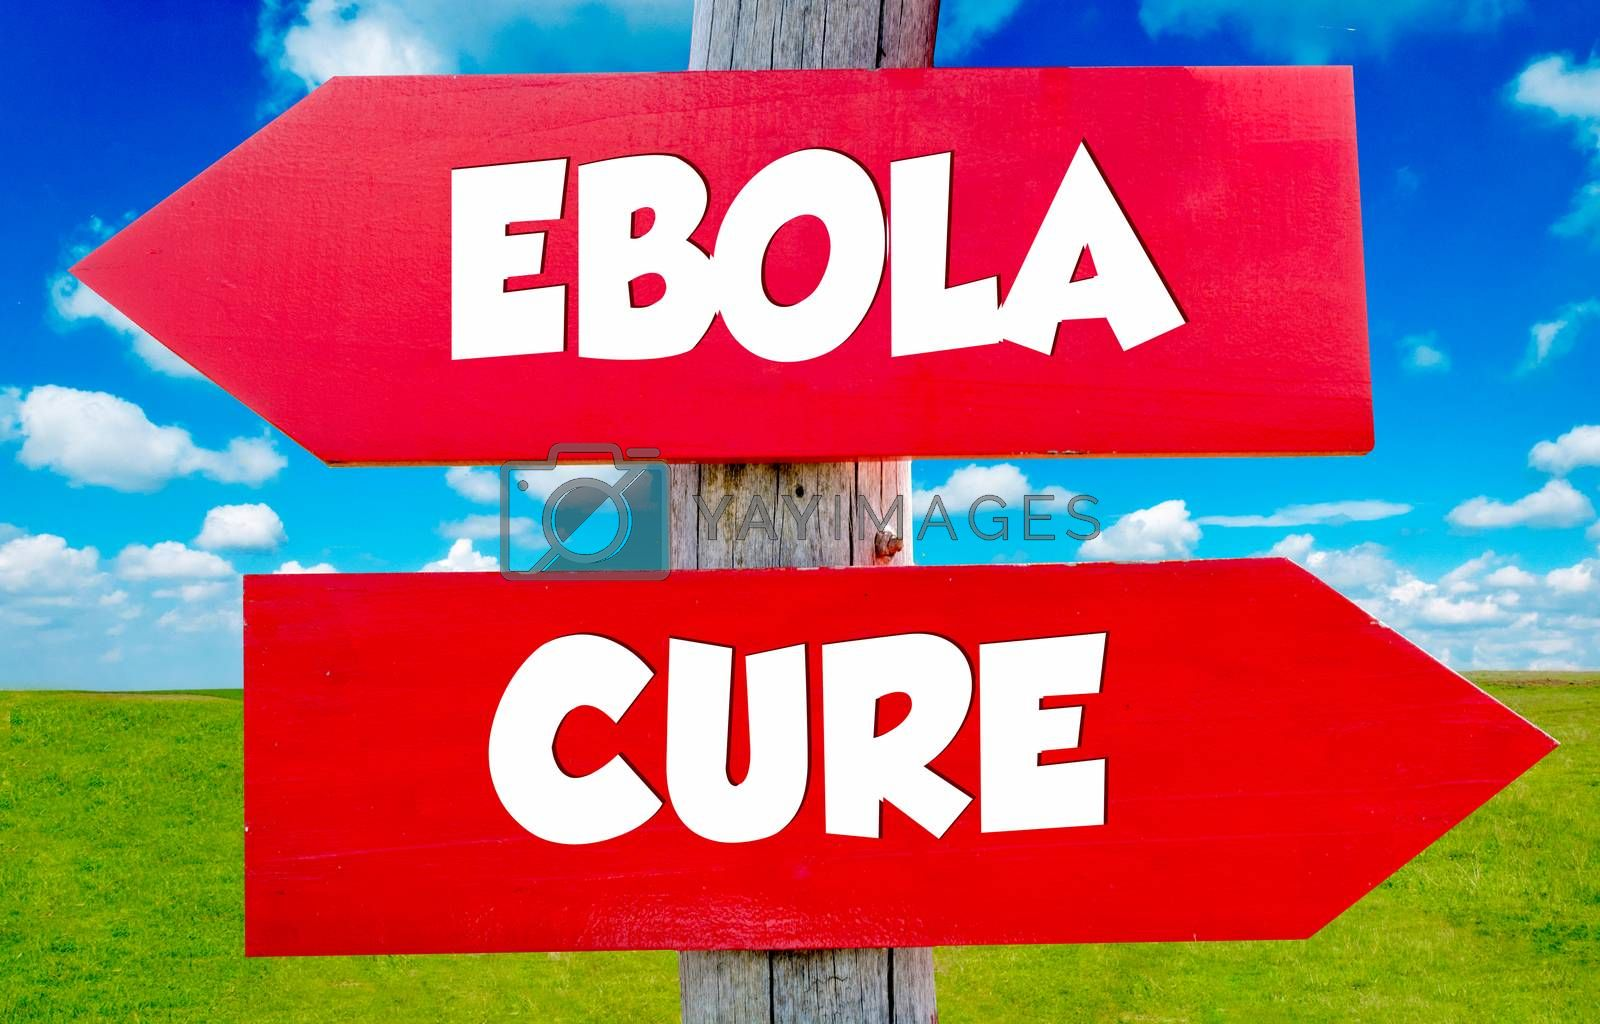 Ebola  concept on the red signs with landscape in background